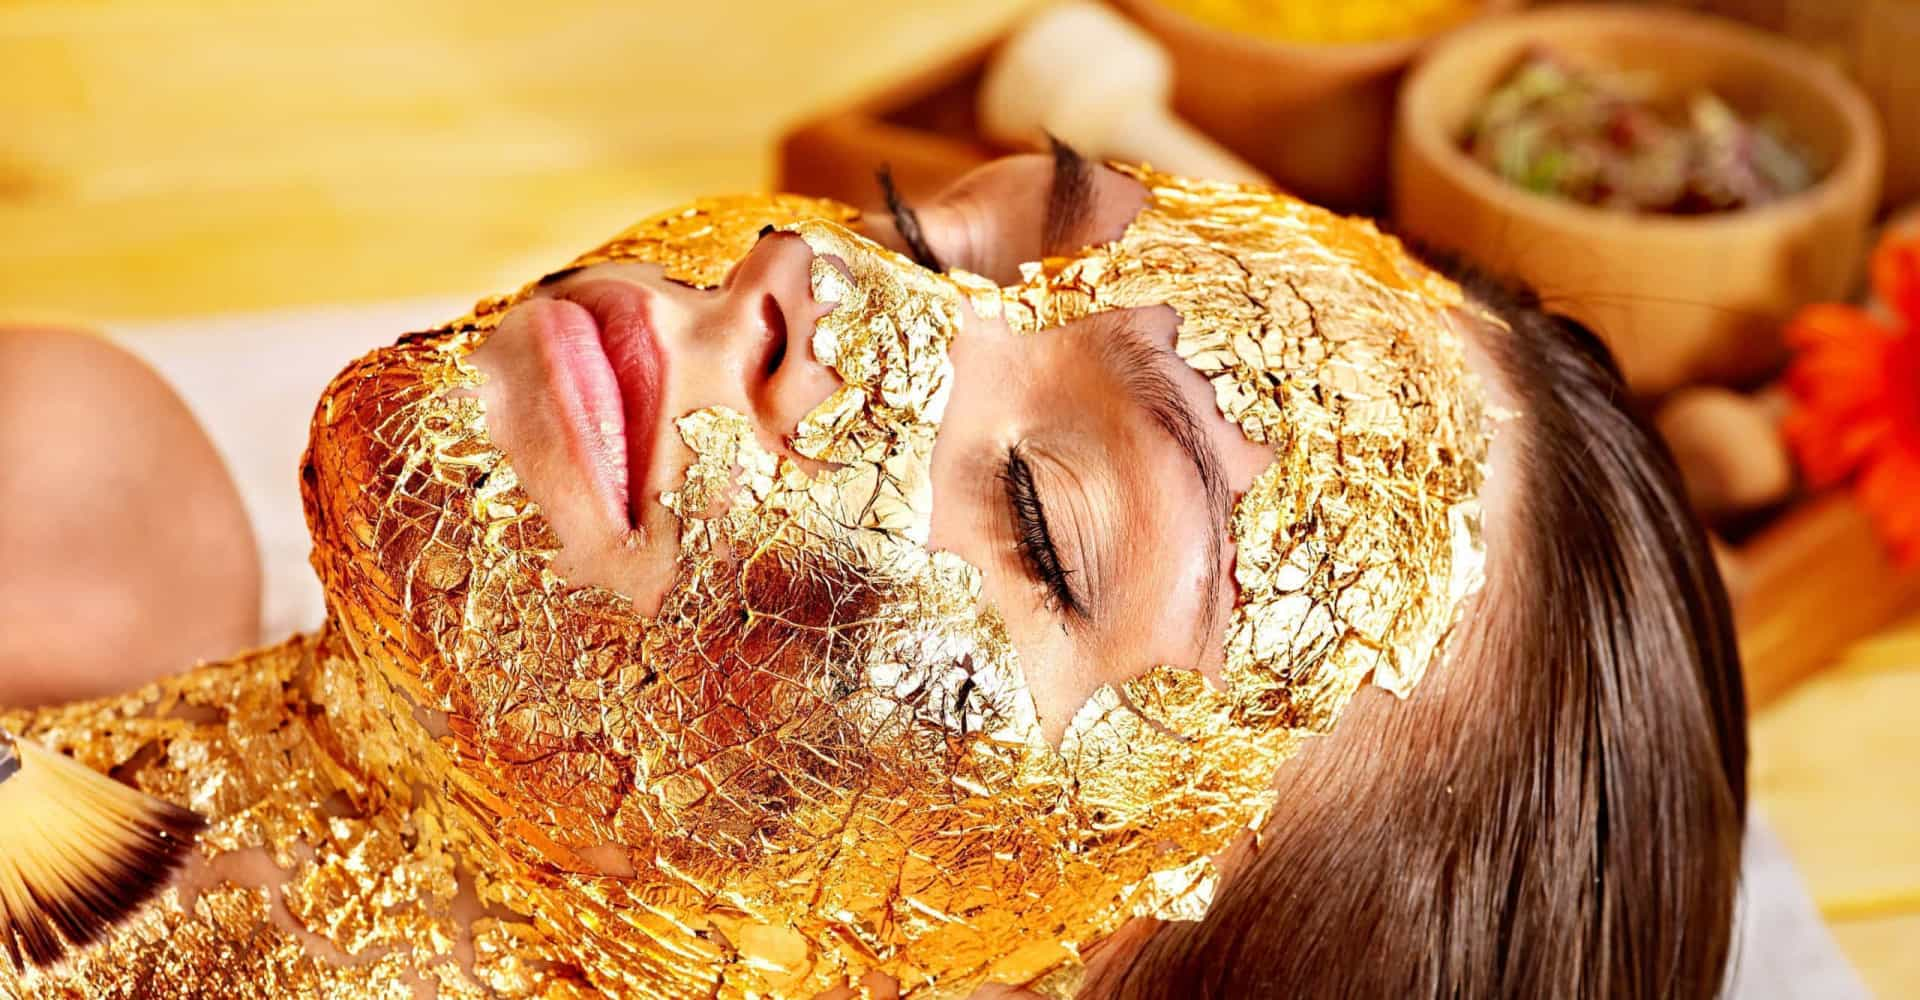 Bizarre wellness treatments you're probably afraid to try